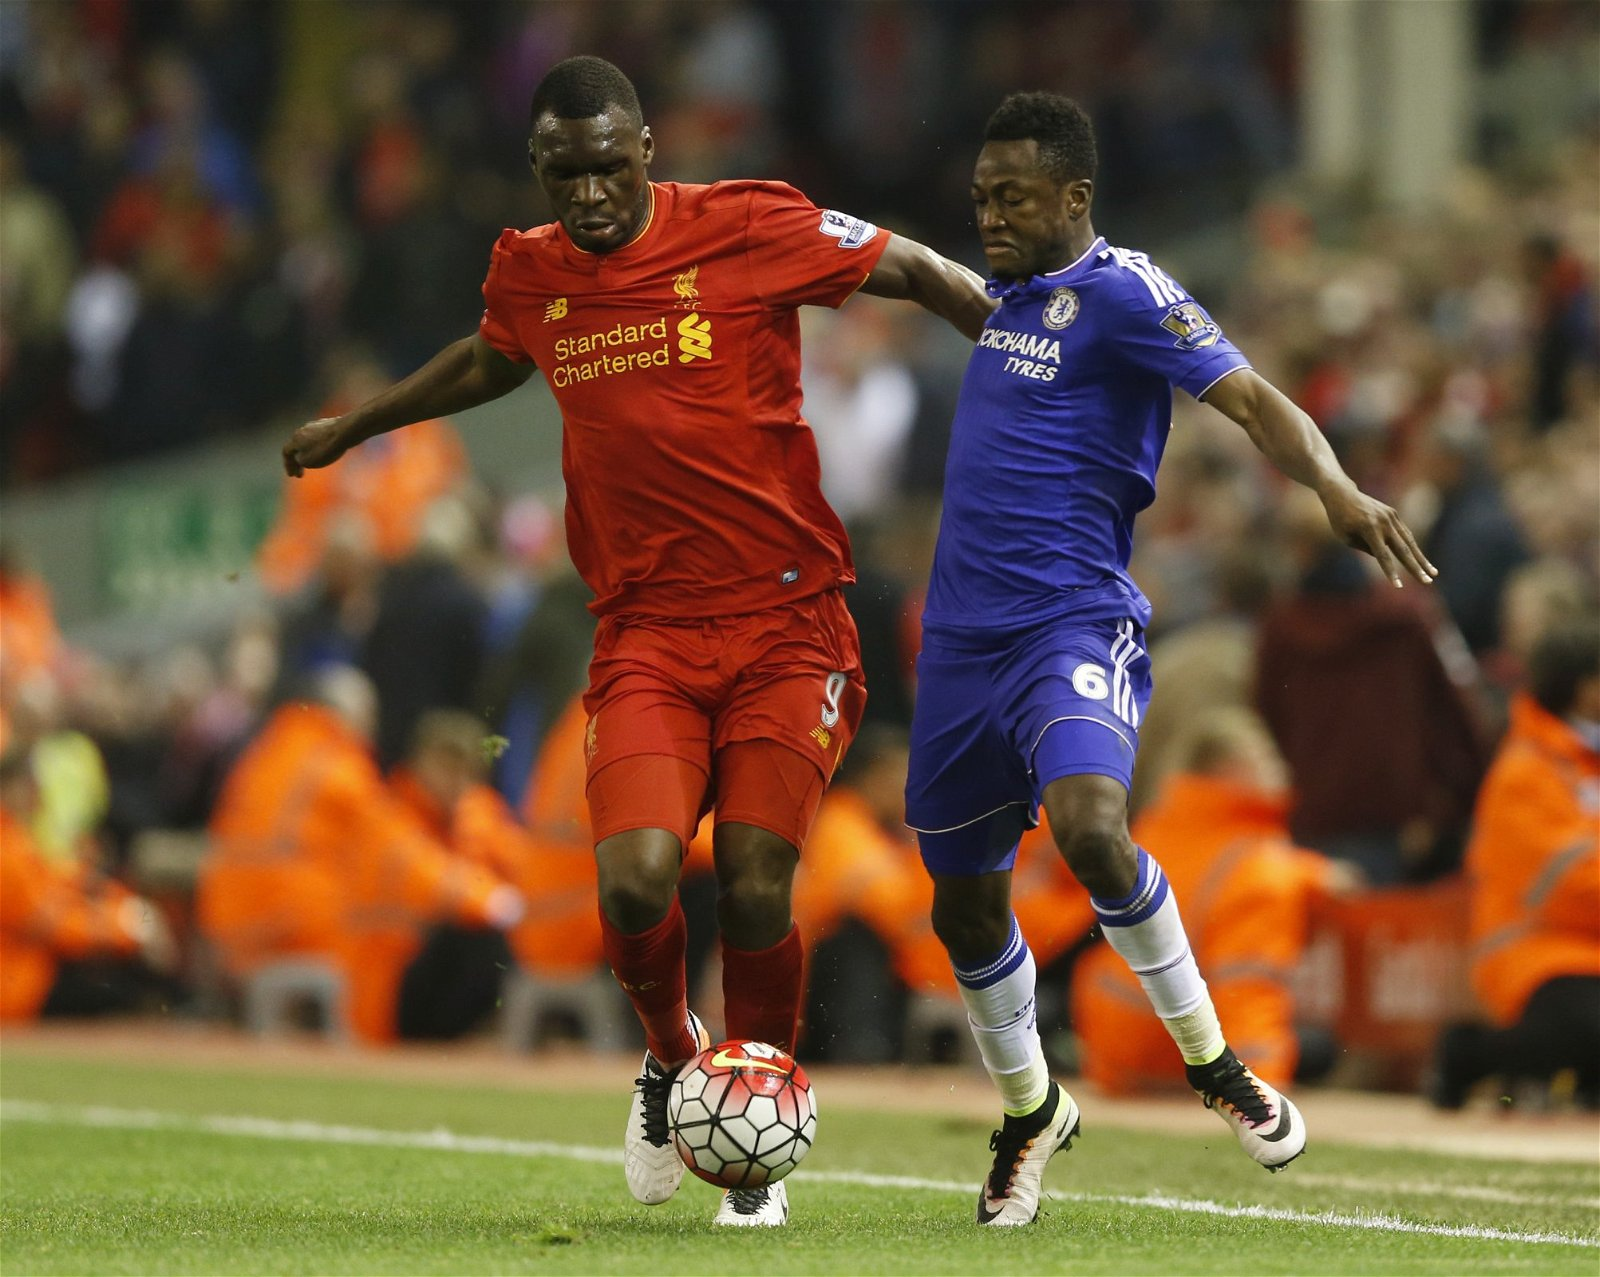 Christian Benteke - Sold for £27m, plays for U23s: 2016 Edwards masterclass made sure LFC had last laugh – opinion